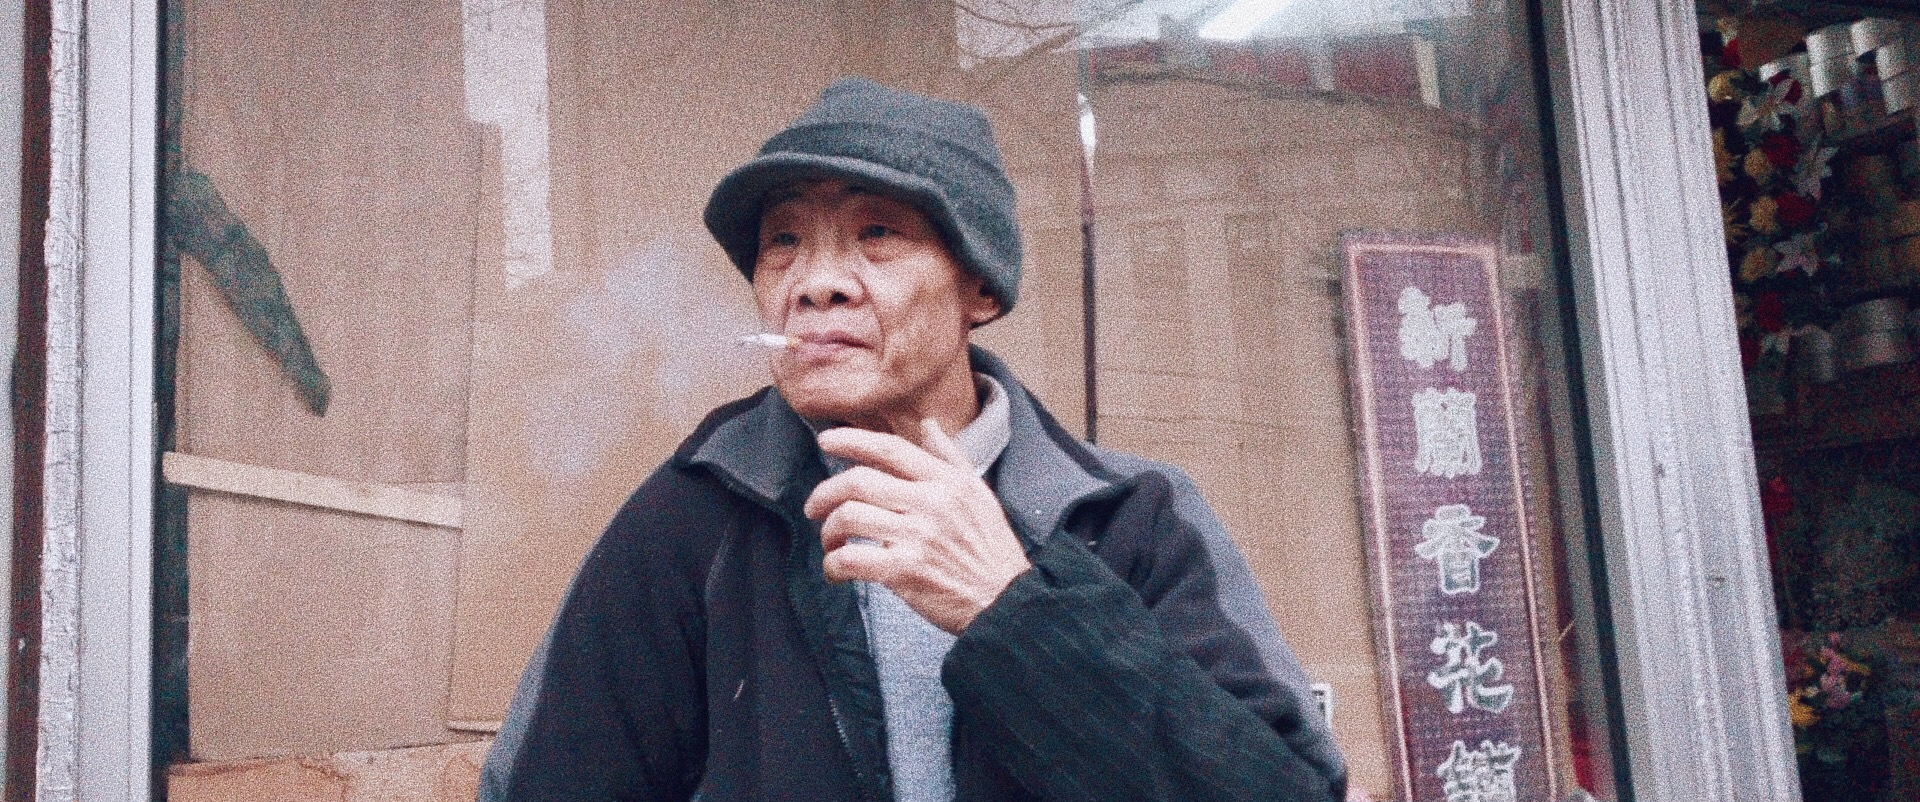 A man smoking a cigarette in Chinatown